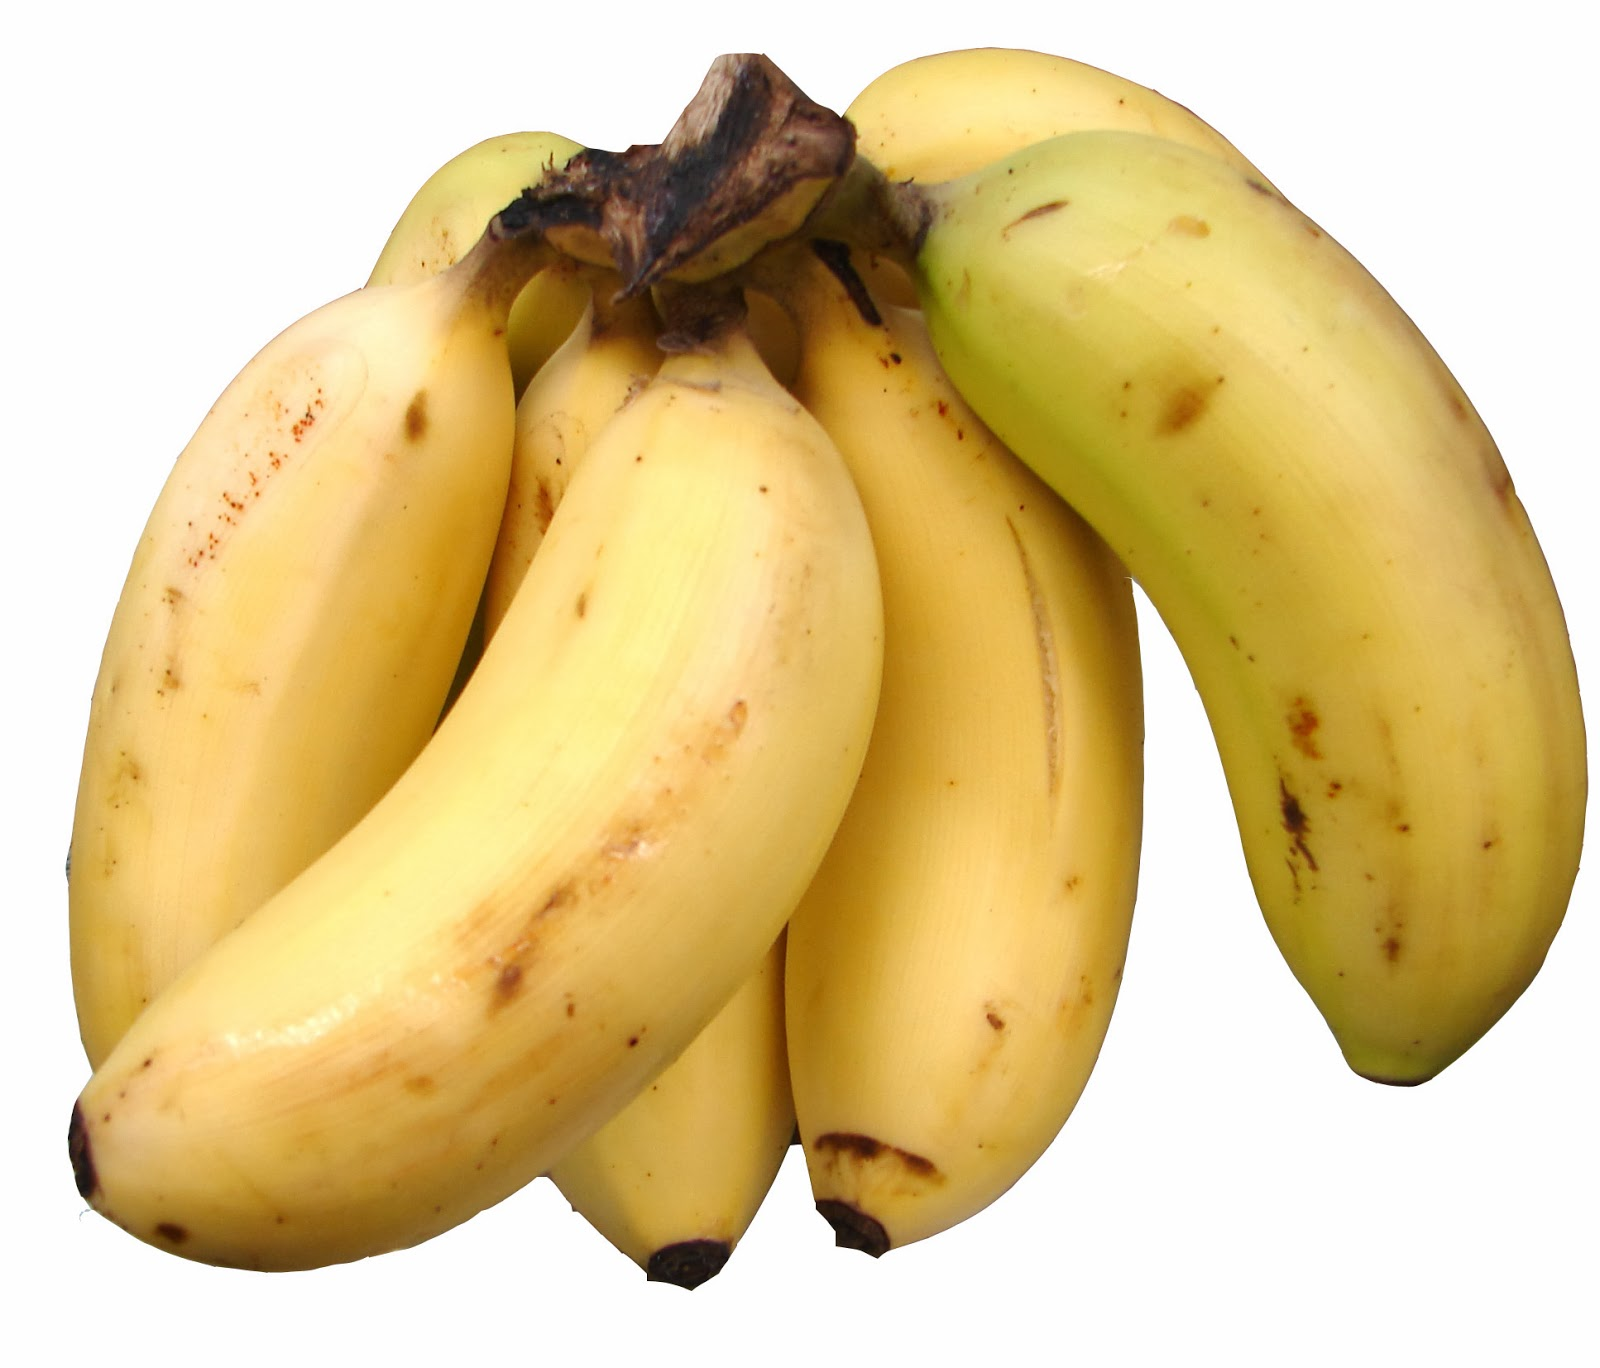 banana banana banana banana banana banana essay Free essay: chapter 1 introduction background of the study bananas are among the most widely consumed fruits on the planet and, according to the us.